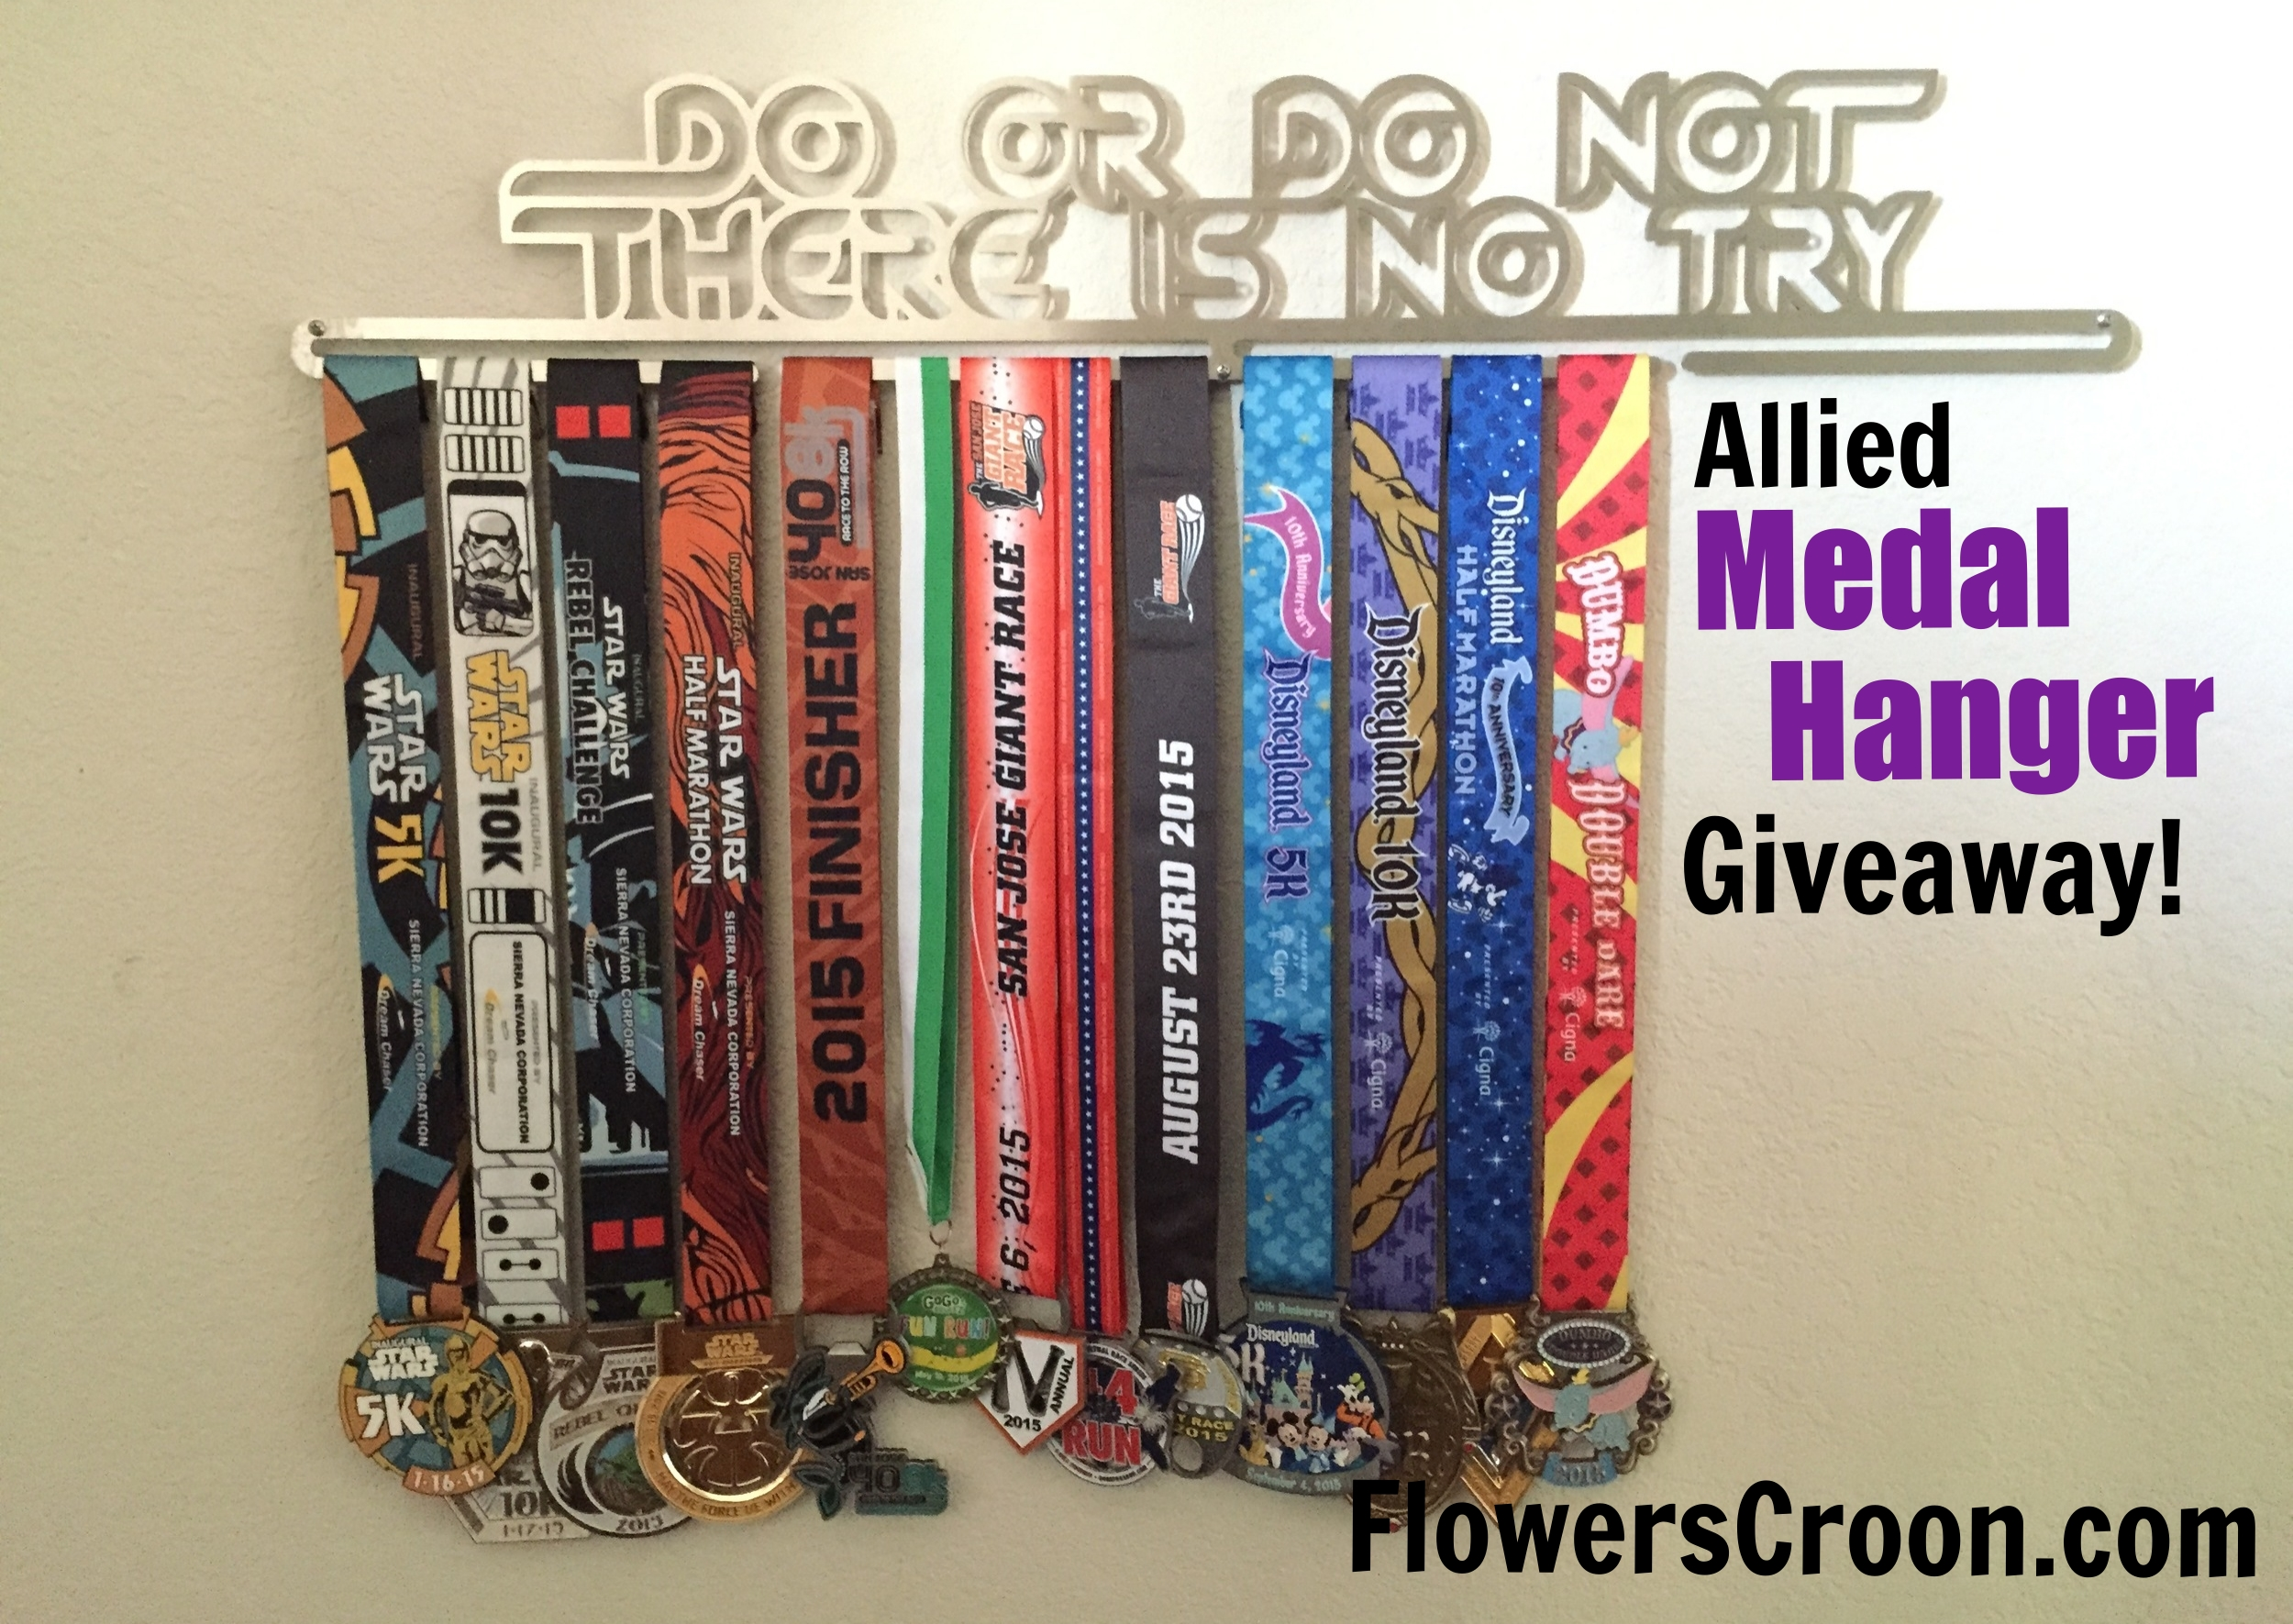 allied-medal-hanger-giveaway-4.jpg